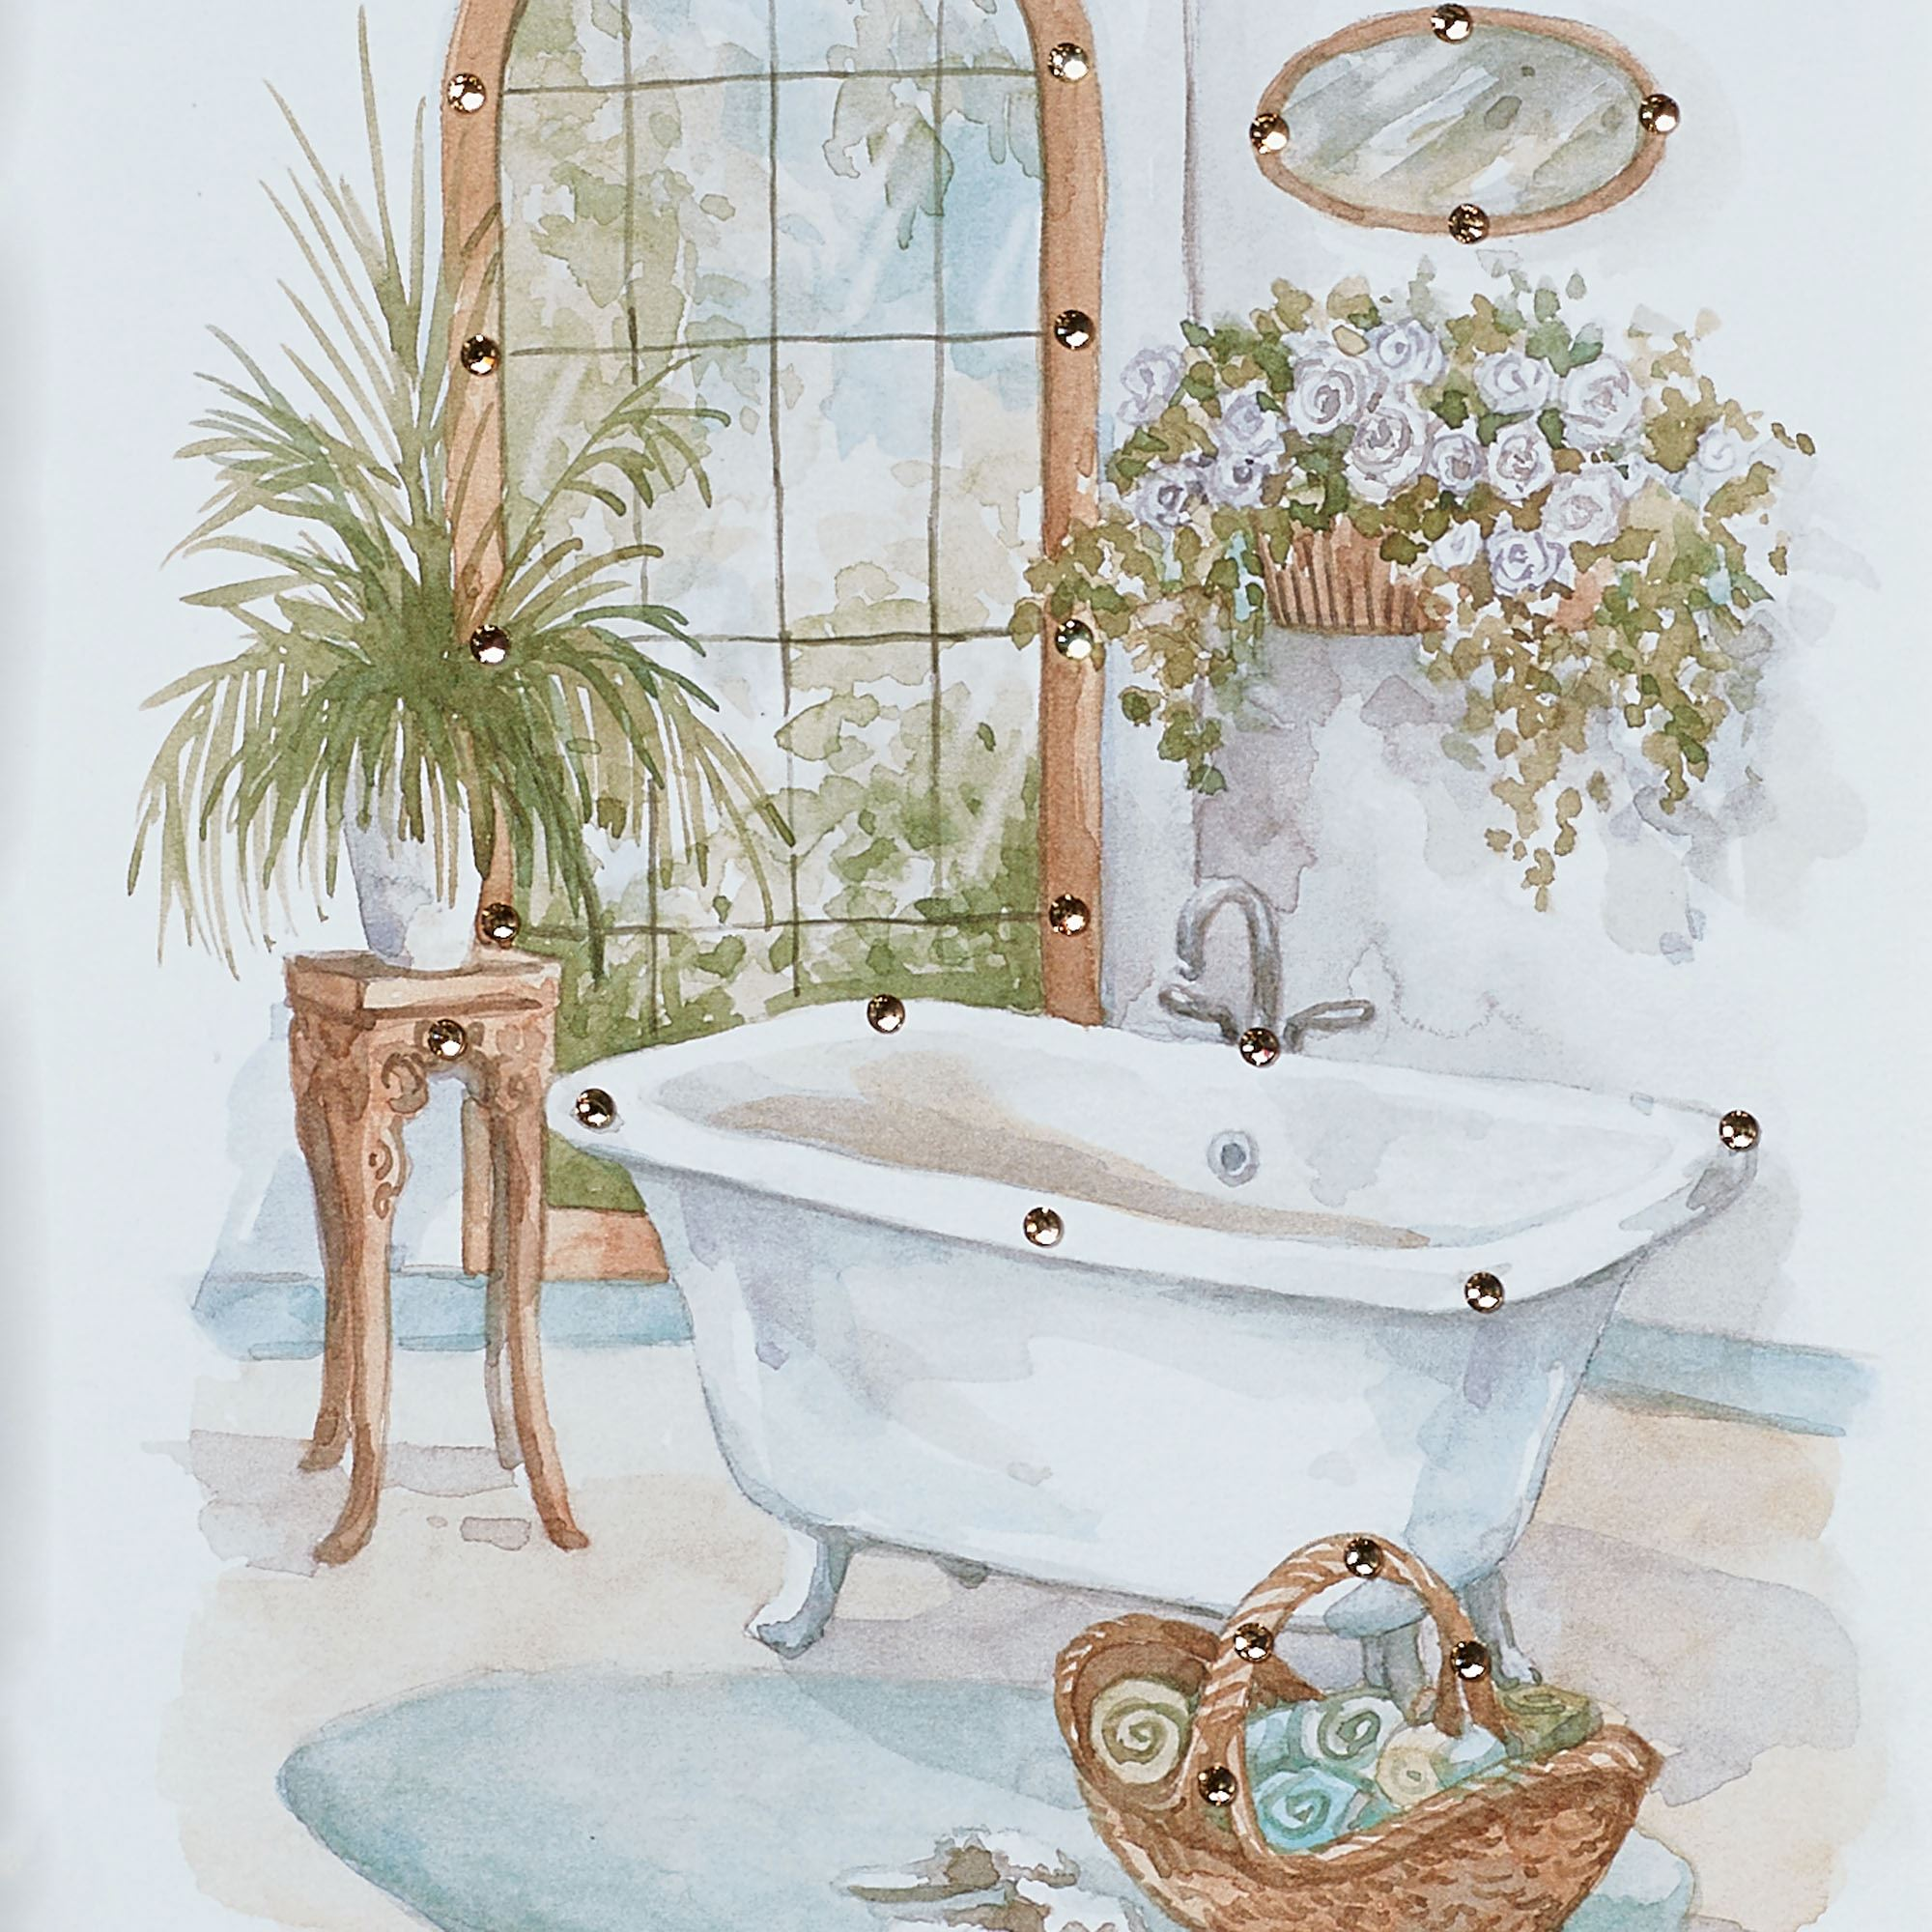 Watercolor Bath in Spa Framed Wall Art